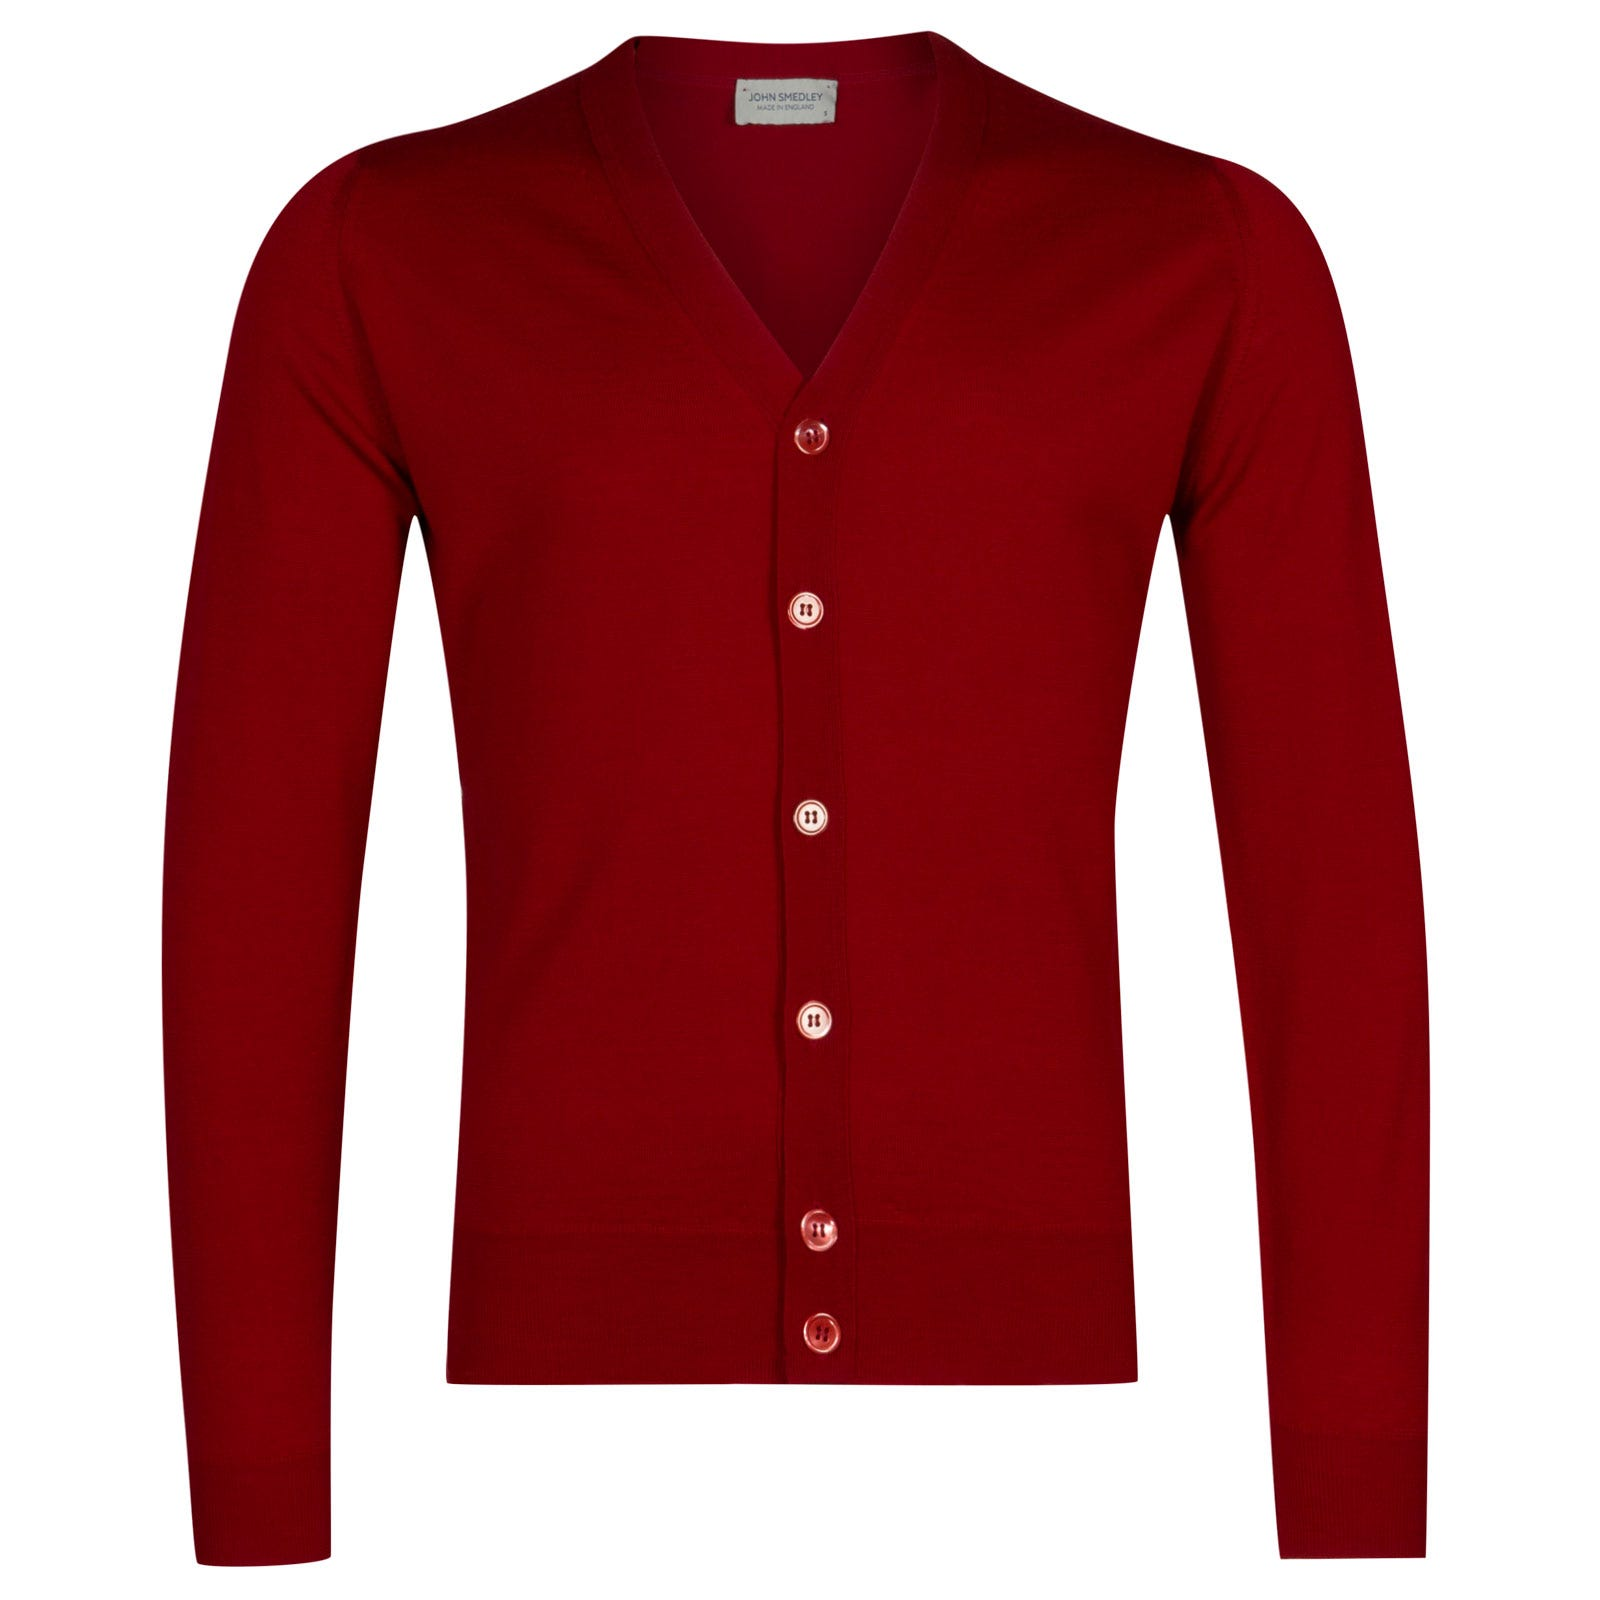 John Smedley naples Merino Wool Cardigan in Crimson Forest-S